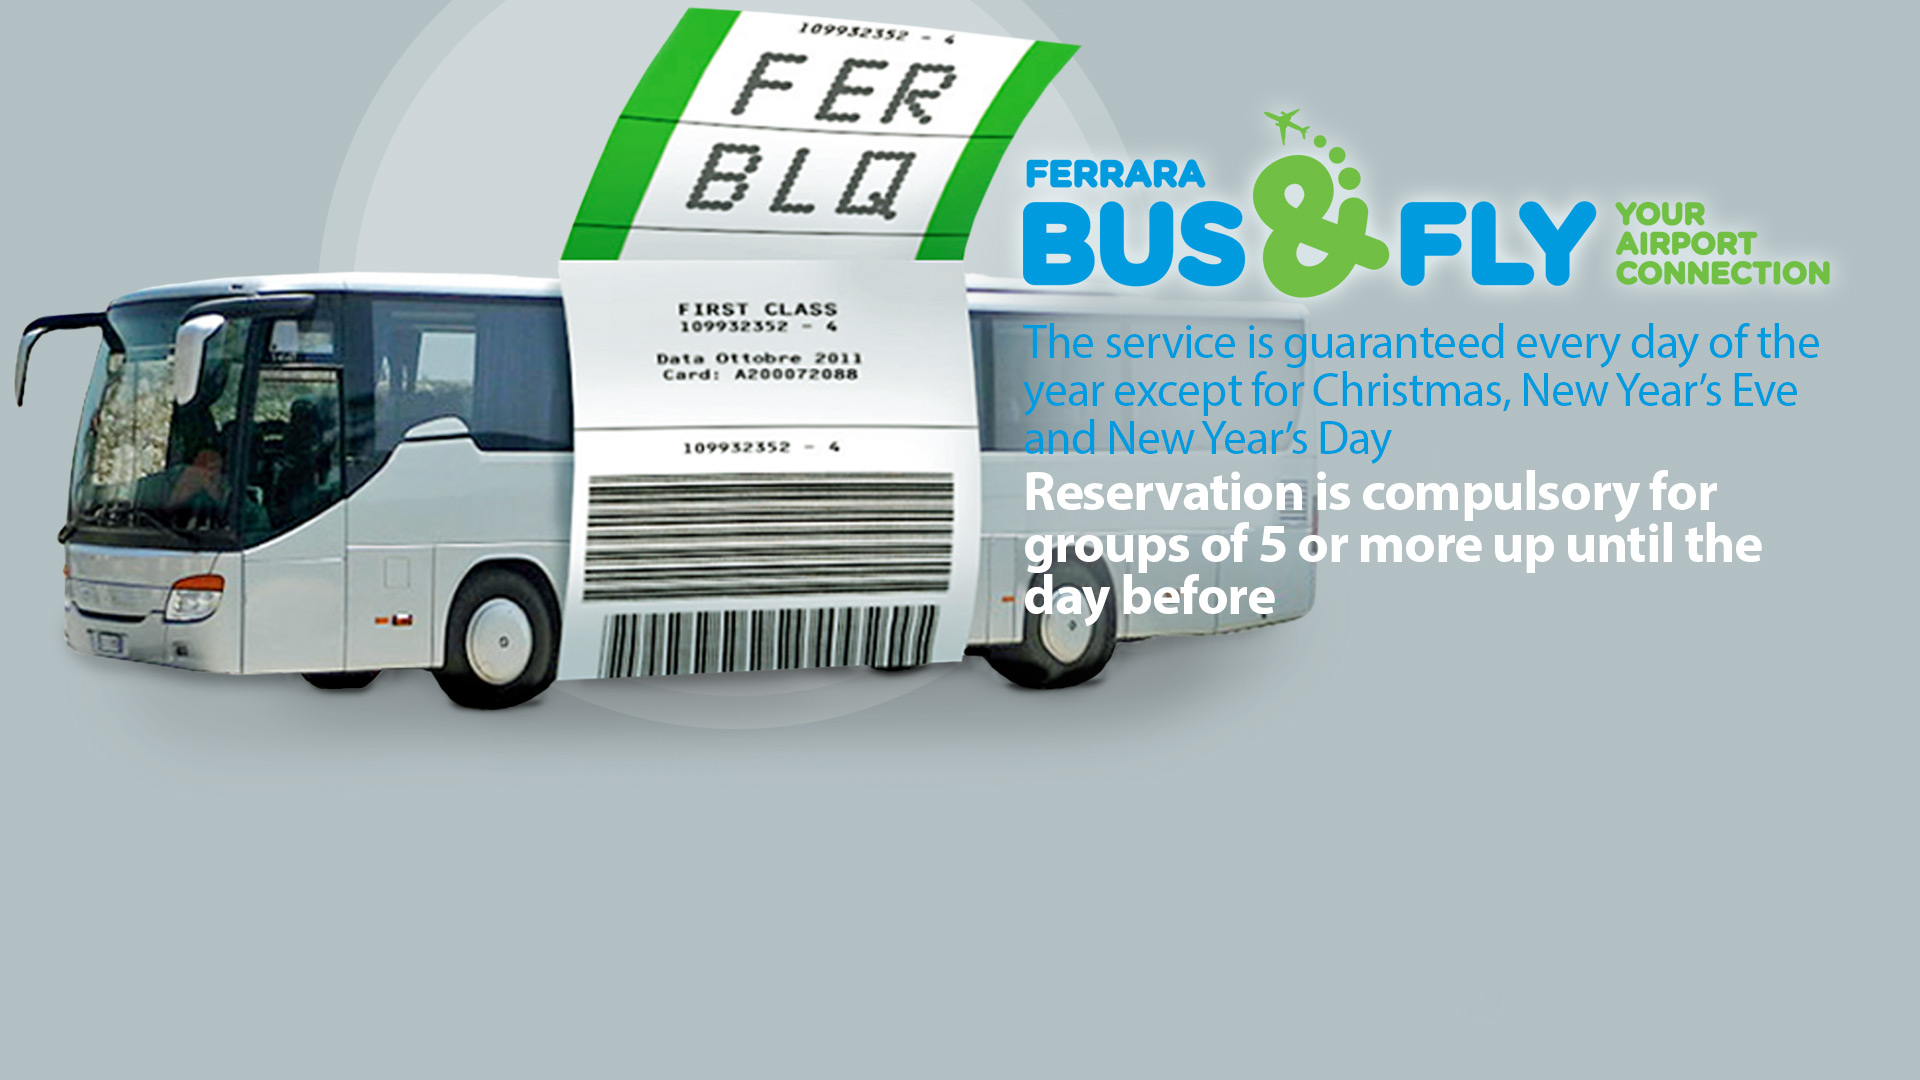 Bus Fly Your Airport Connection Ferraras Shuttle tofrom